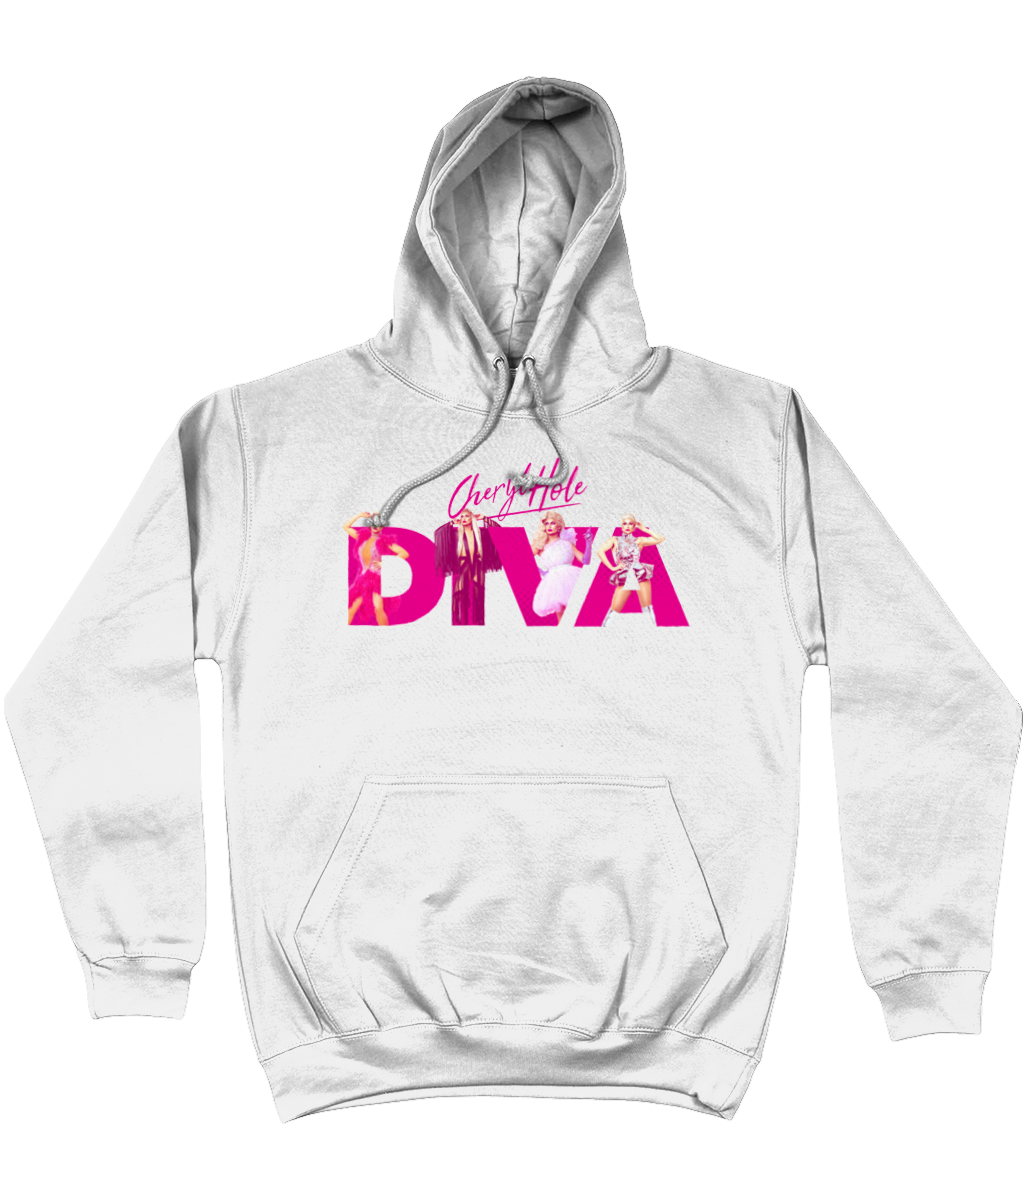 CHERYL HOLE - OFFICIAL MERCH - DIVA HOODIE